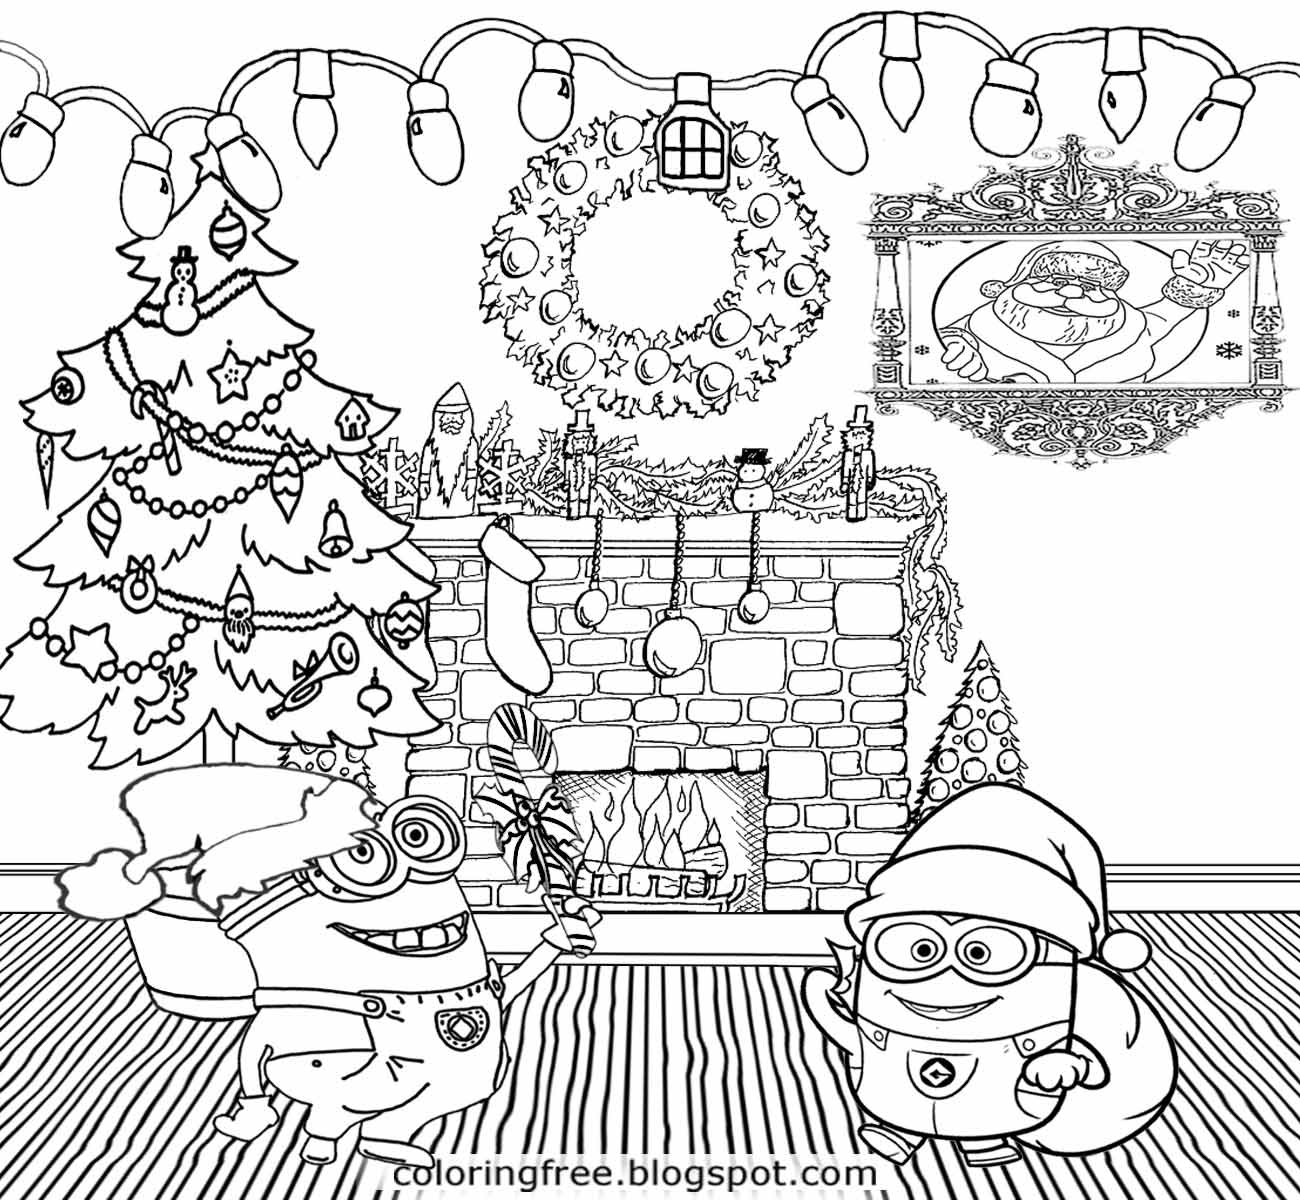 Xmas Tree Party Things To Draw Cool Merry Christmas Minions Coloring